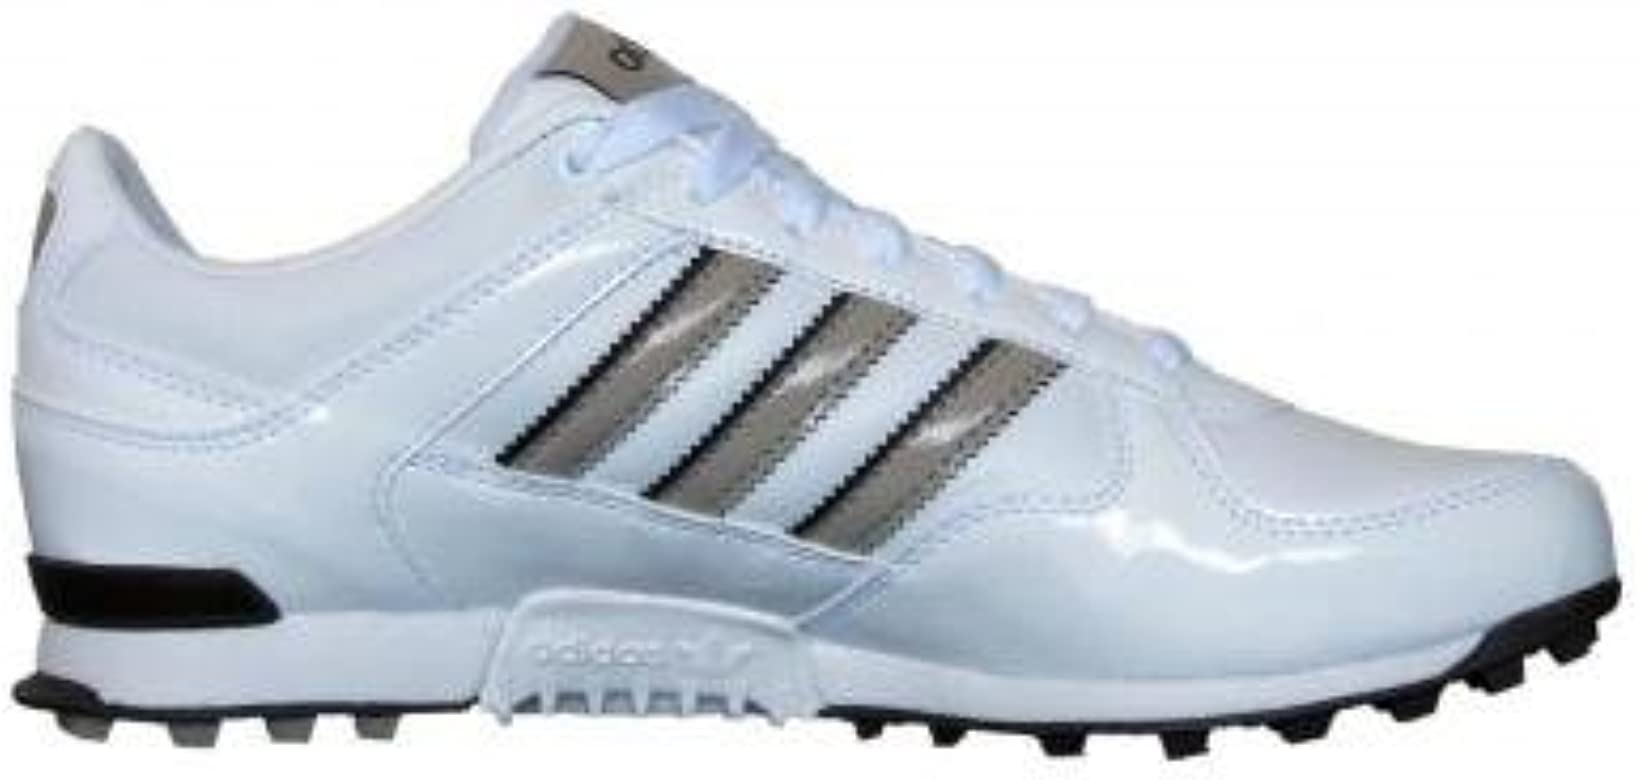 13 Blanc Trace Adidas Country T 45 Homme X Chaussure PkwO80n